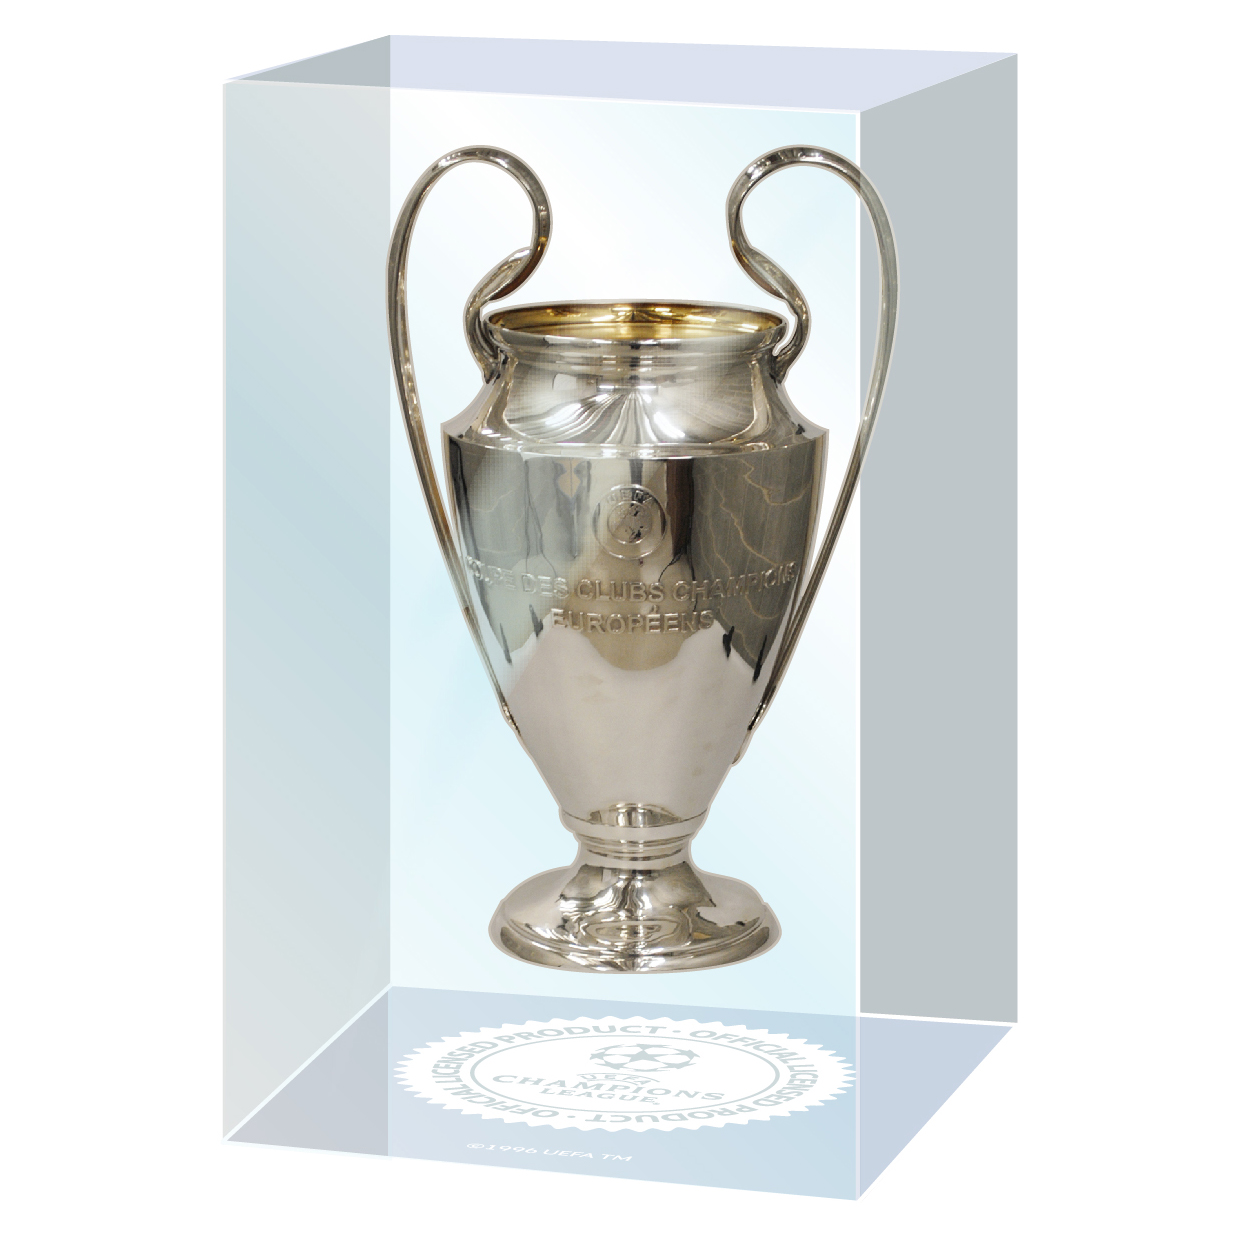 UEFA Champions League Trophy in Acrylic Embedment 70mm